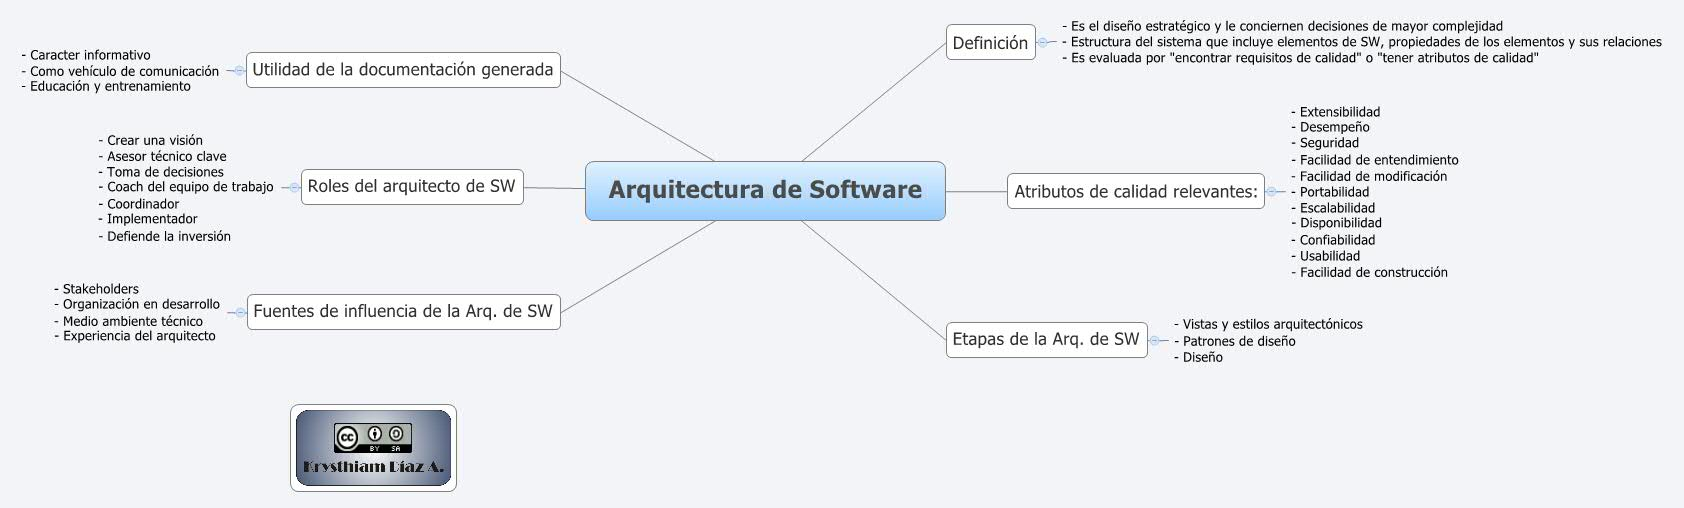 Arquitectura de software xmind online library for Arquitectura software